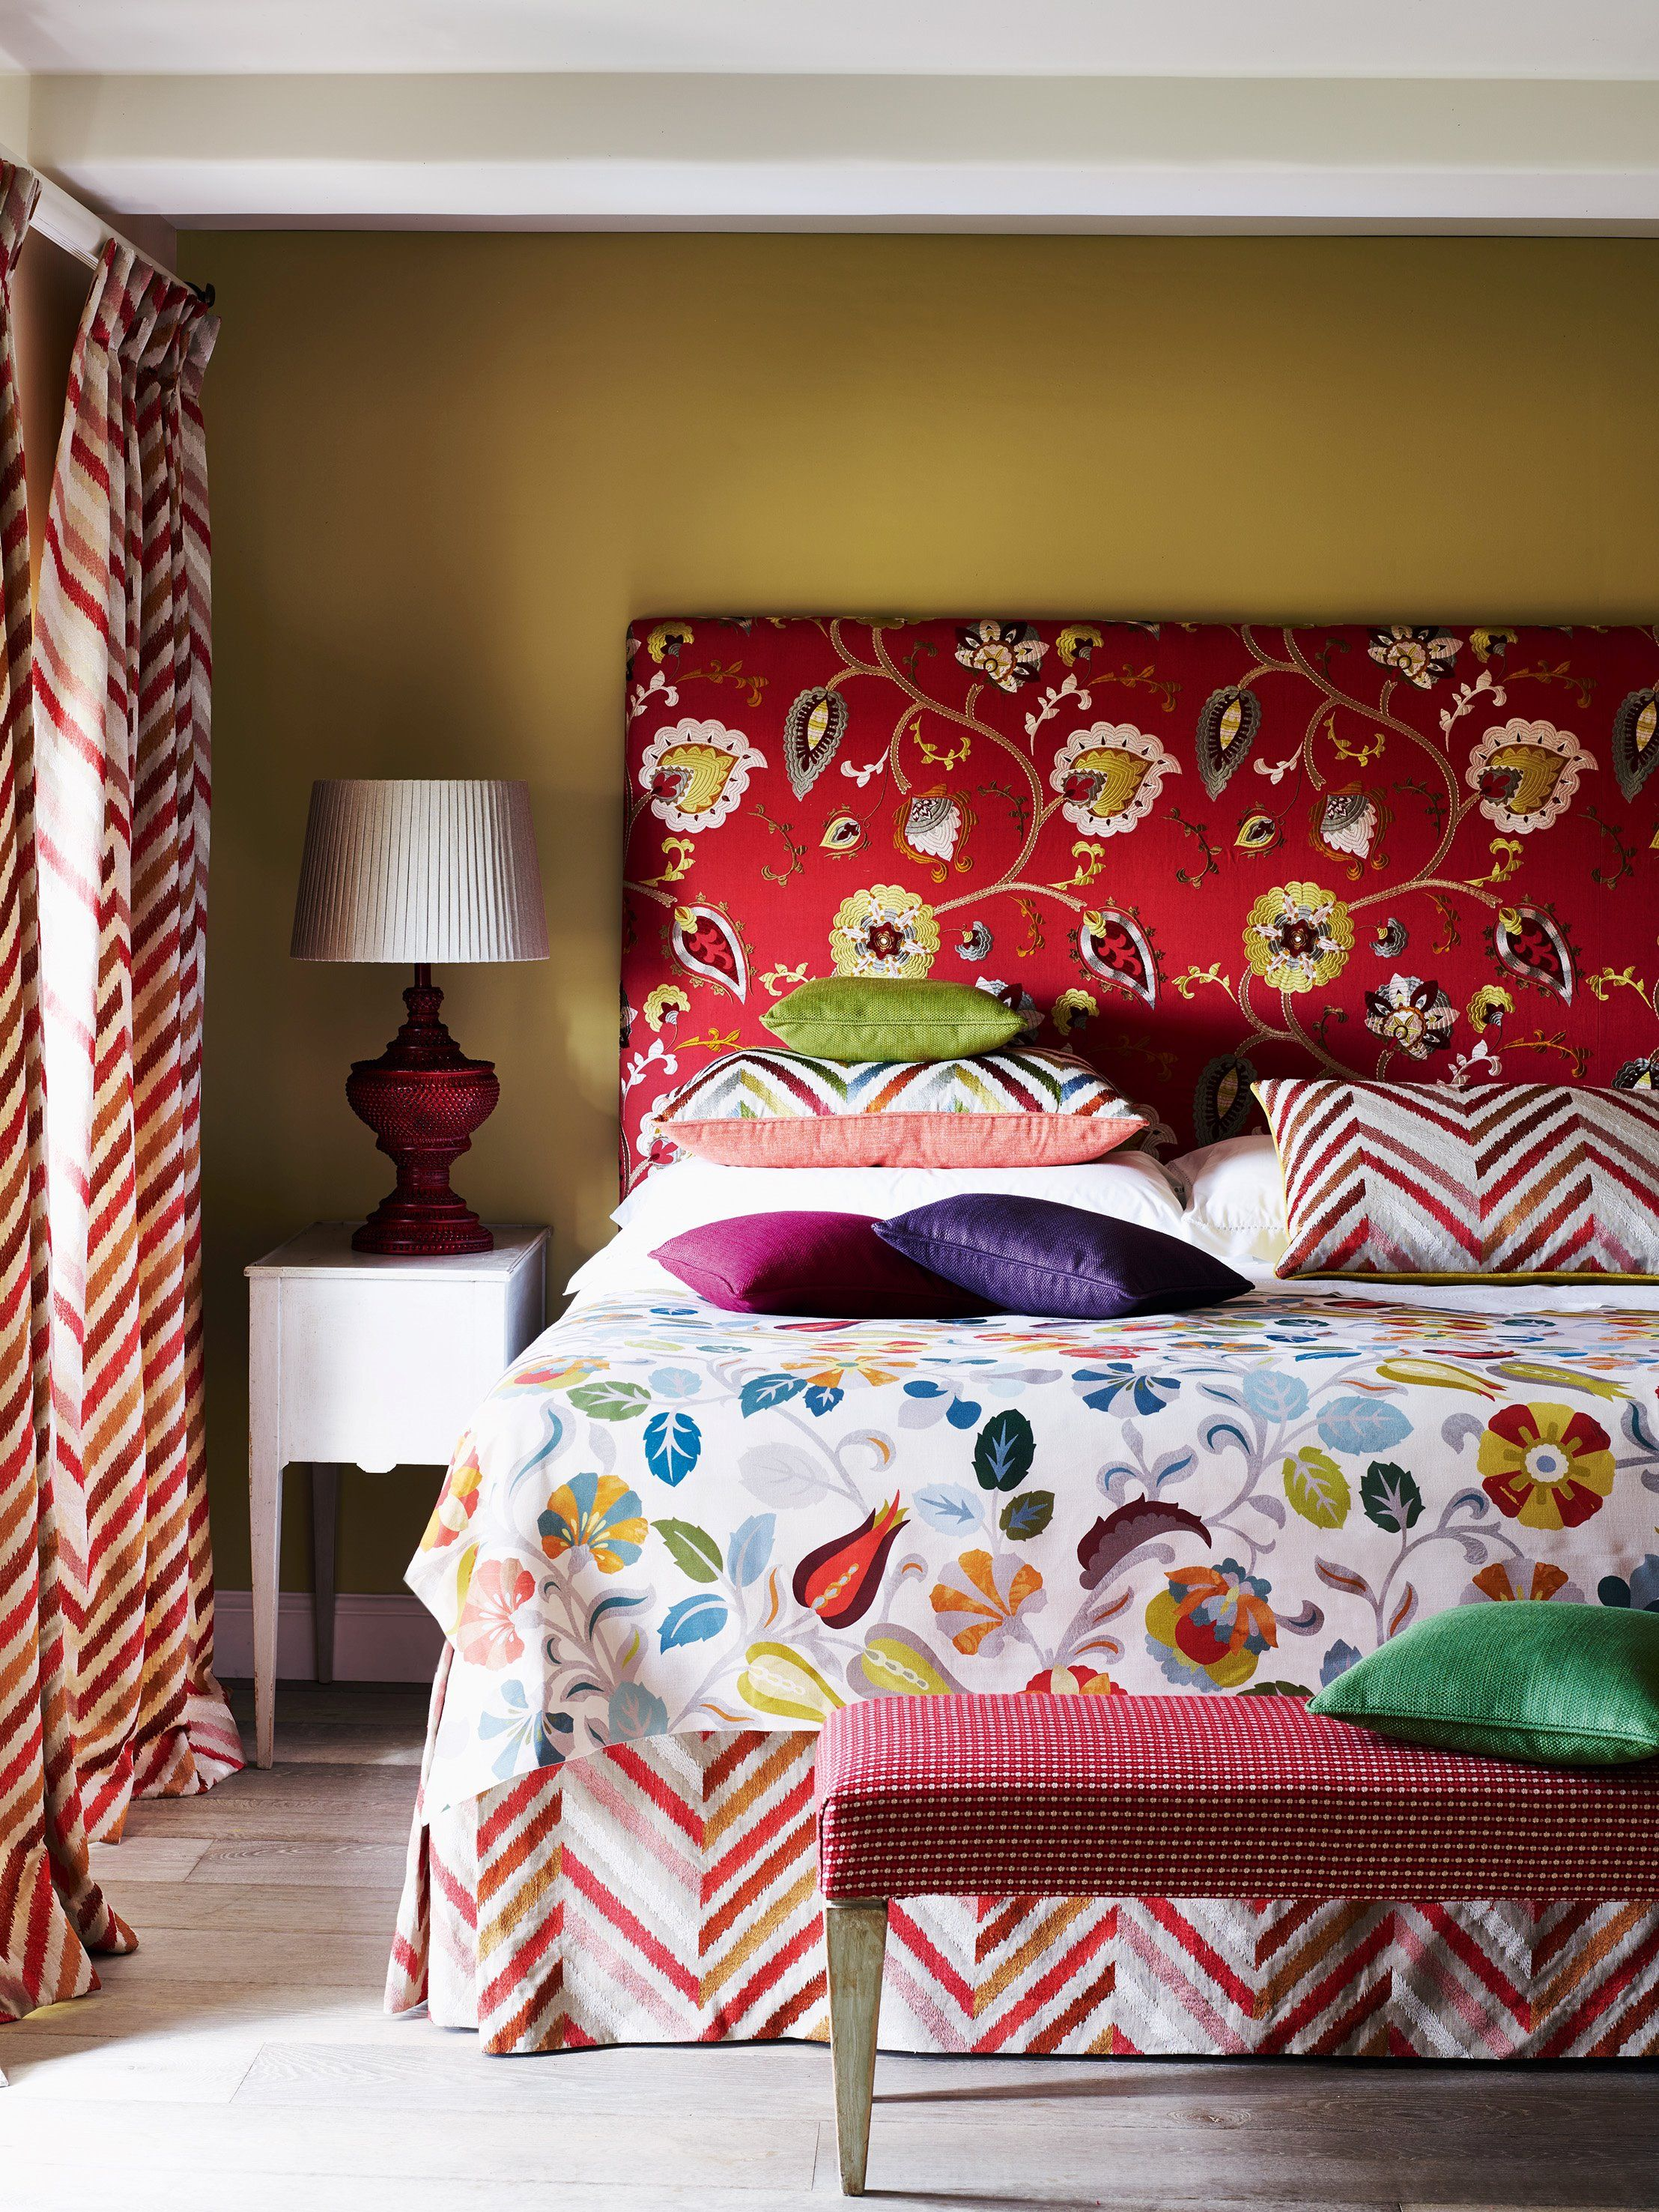 Headboard In Pasillo (Red) Cover In Havana (Red, Blue) Pillows